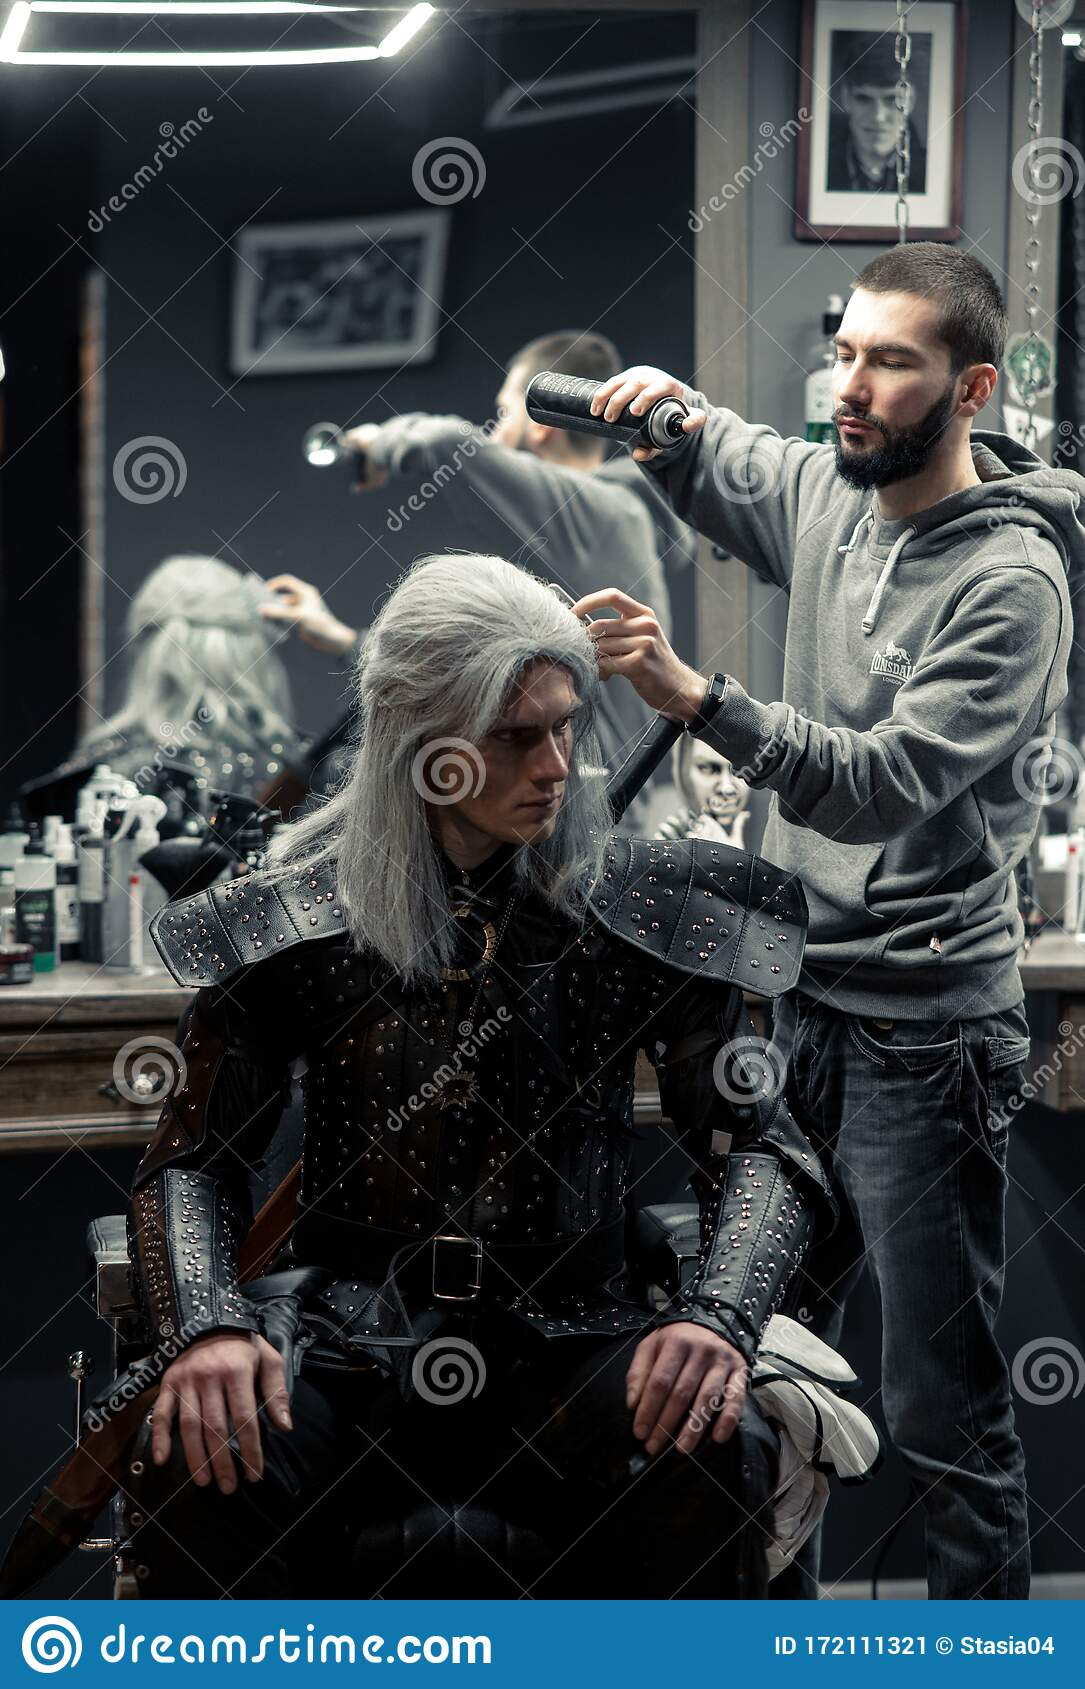 Geralt Of Rivia Hair : geralt, rivia, Cosplayer, Image, Character, Geralt, Rivia, Series, Witcher, Makes, Styling, Barbershop, Editorial, Photo, Caucasian,, Film:, 172111321